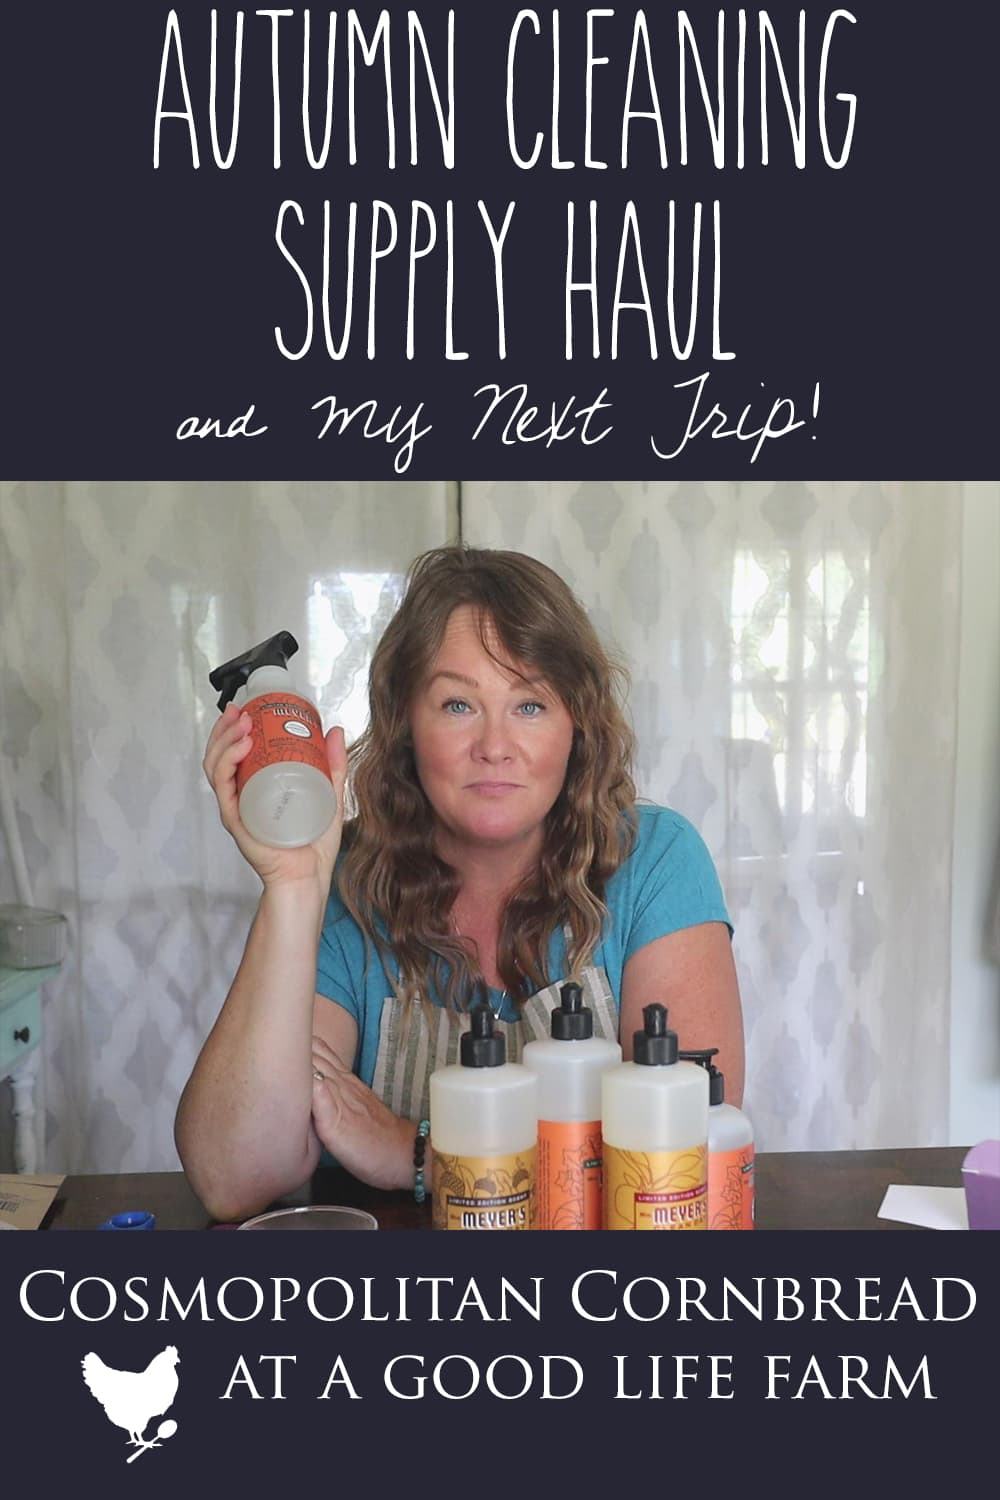 Today I shared my cleaning supply haul from Grove, and then I shared about my trip that came up for this weekend. It's someplace I have always wanted to go!